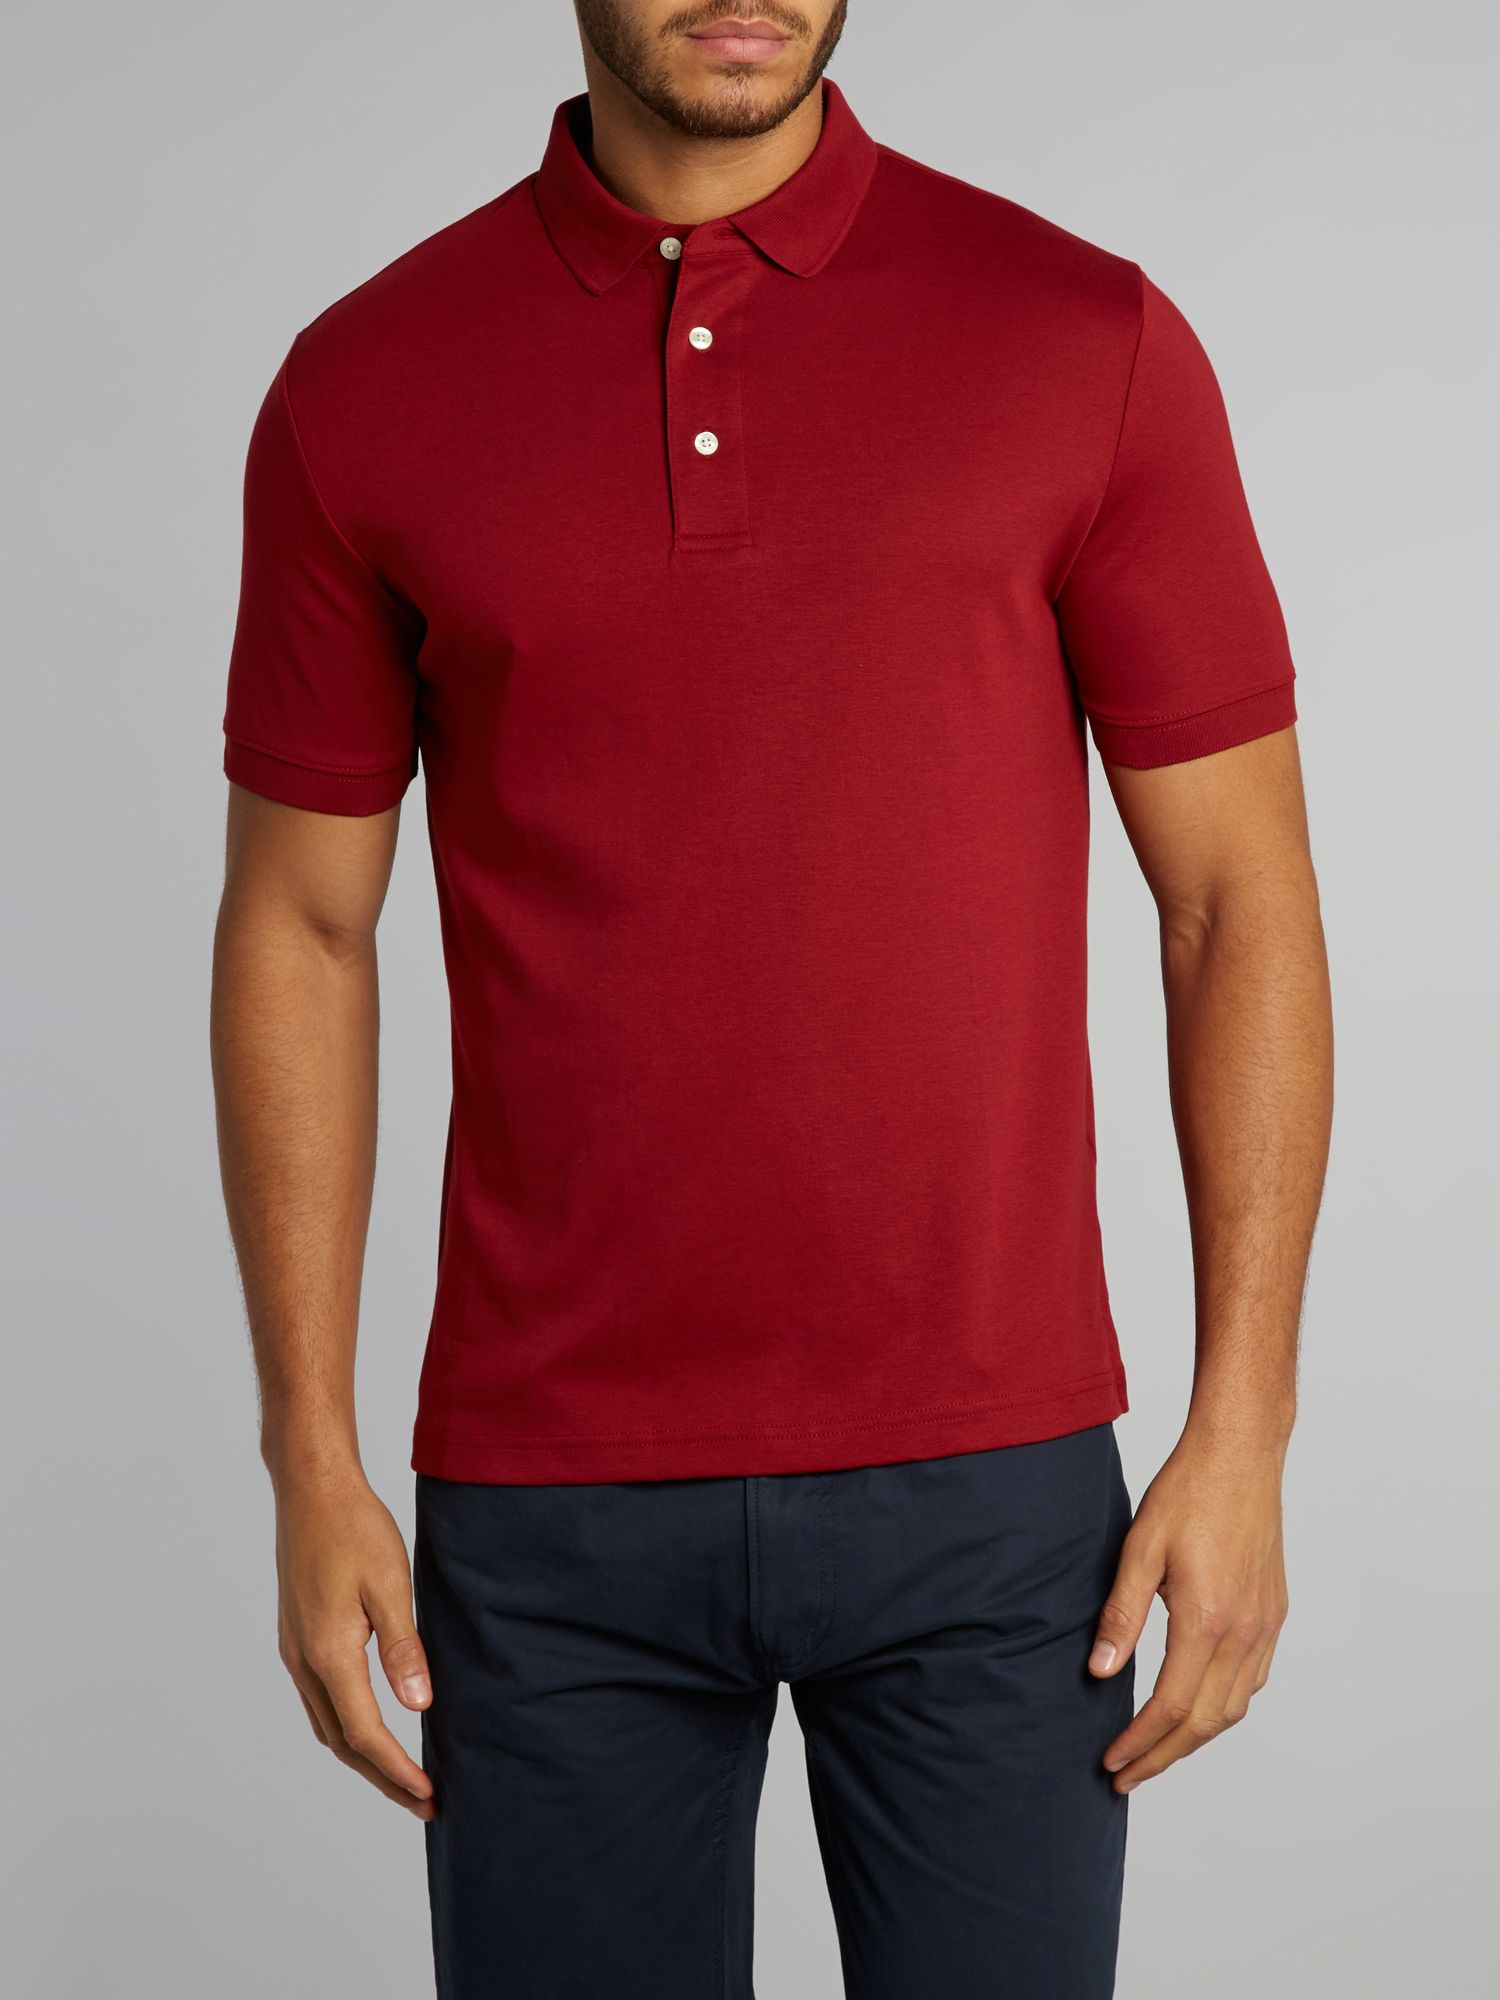 Short sleeved tailored fit supima polo